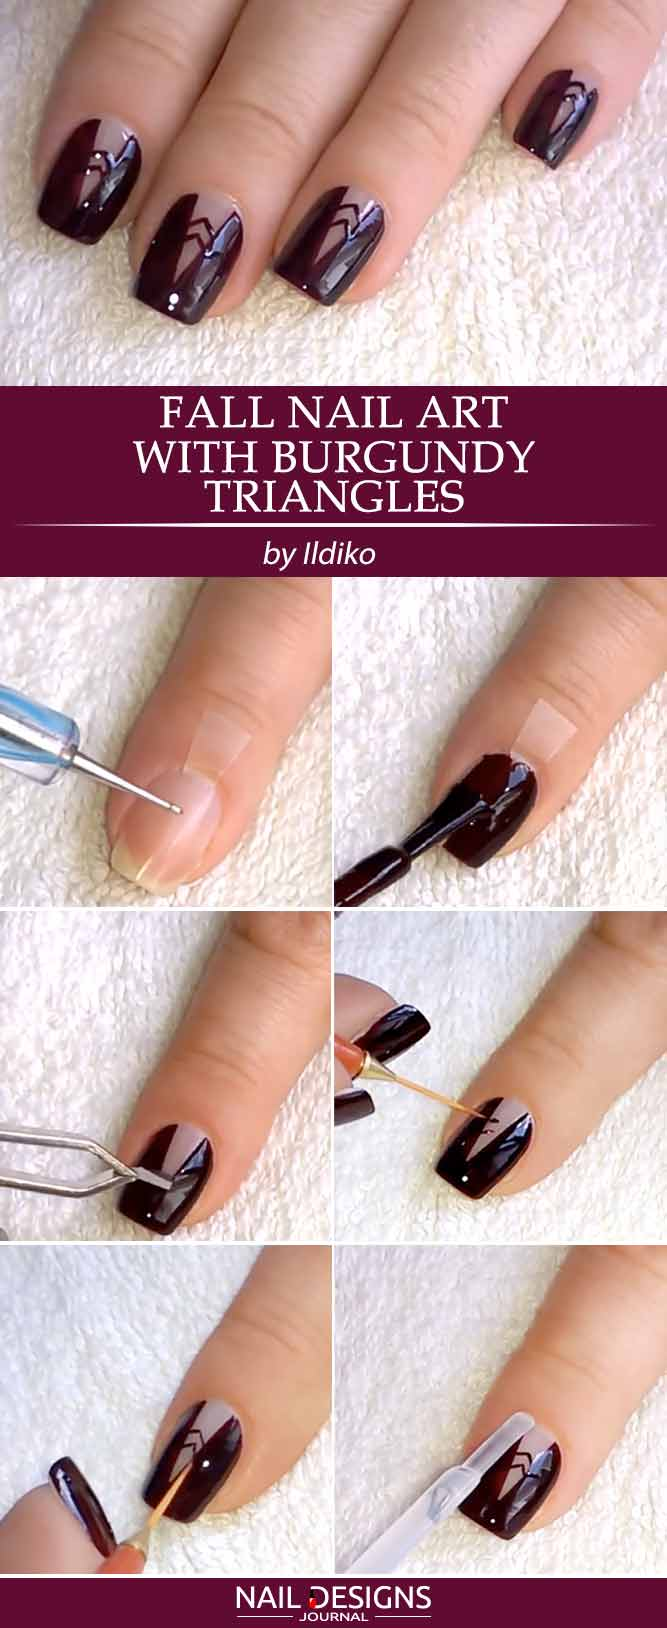 Fall Nail Art with Burgundy Triangles